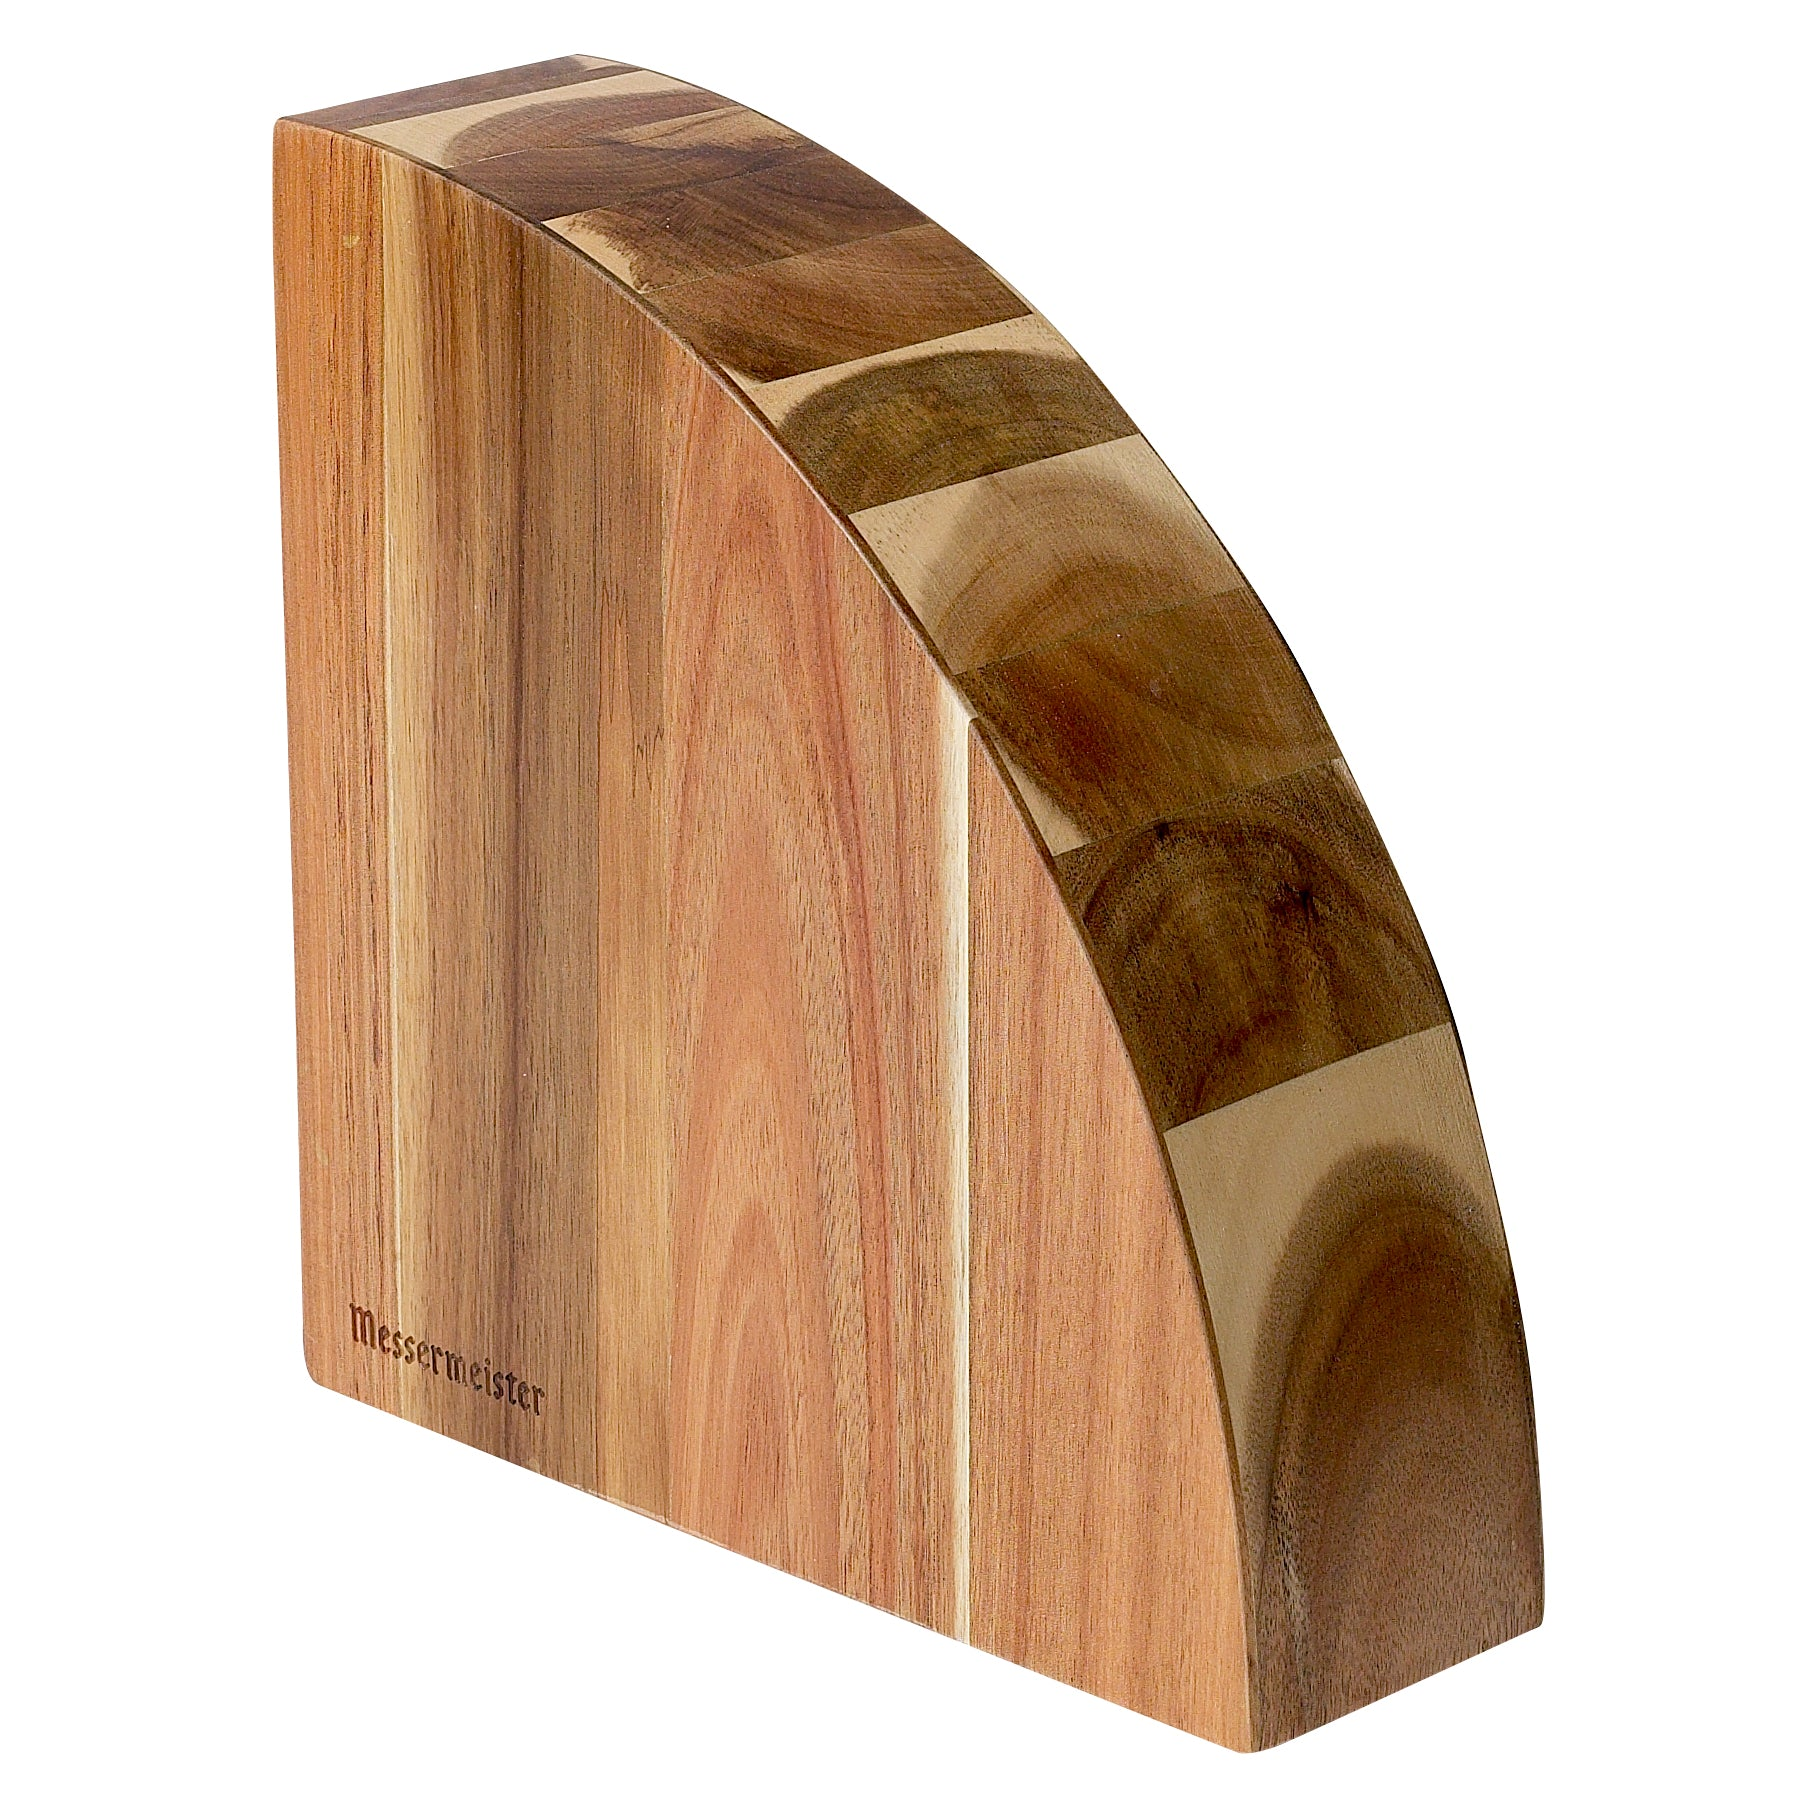 Walnut Magnet Block, Walnut Fine Knife_Herbs_Spices